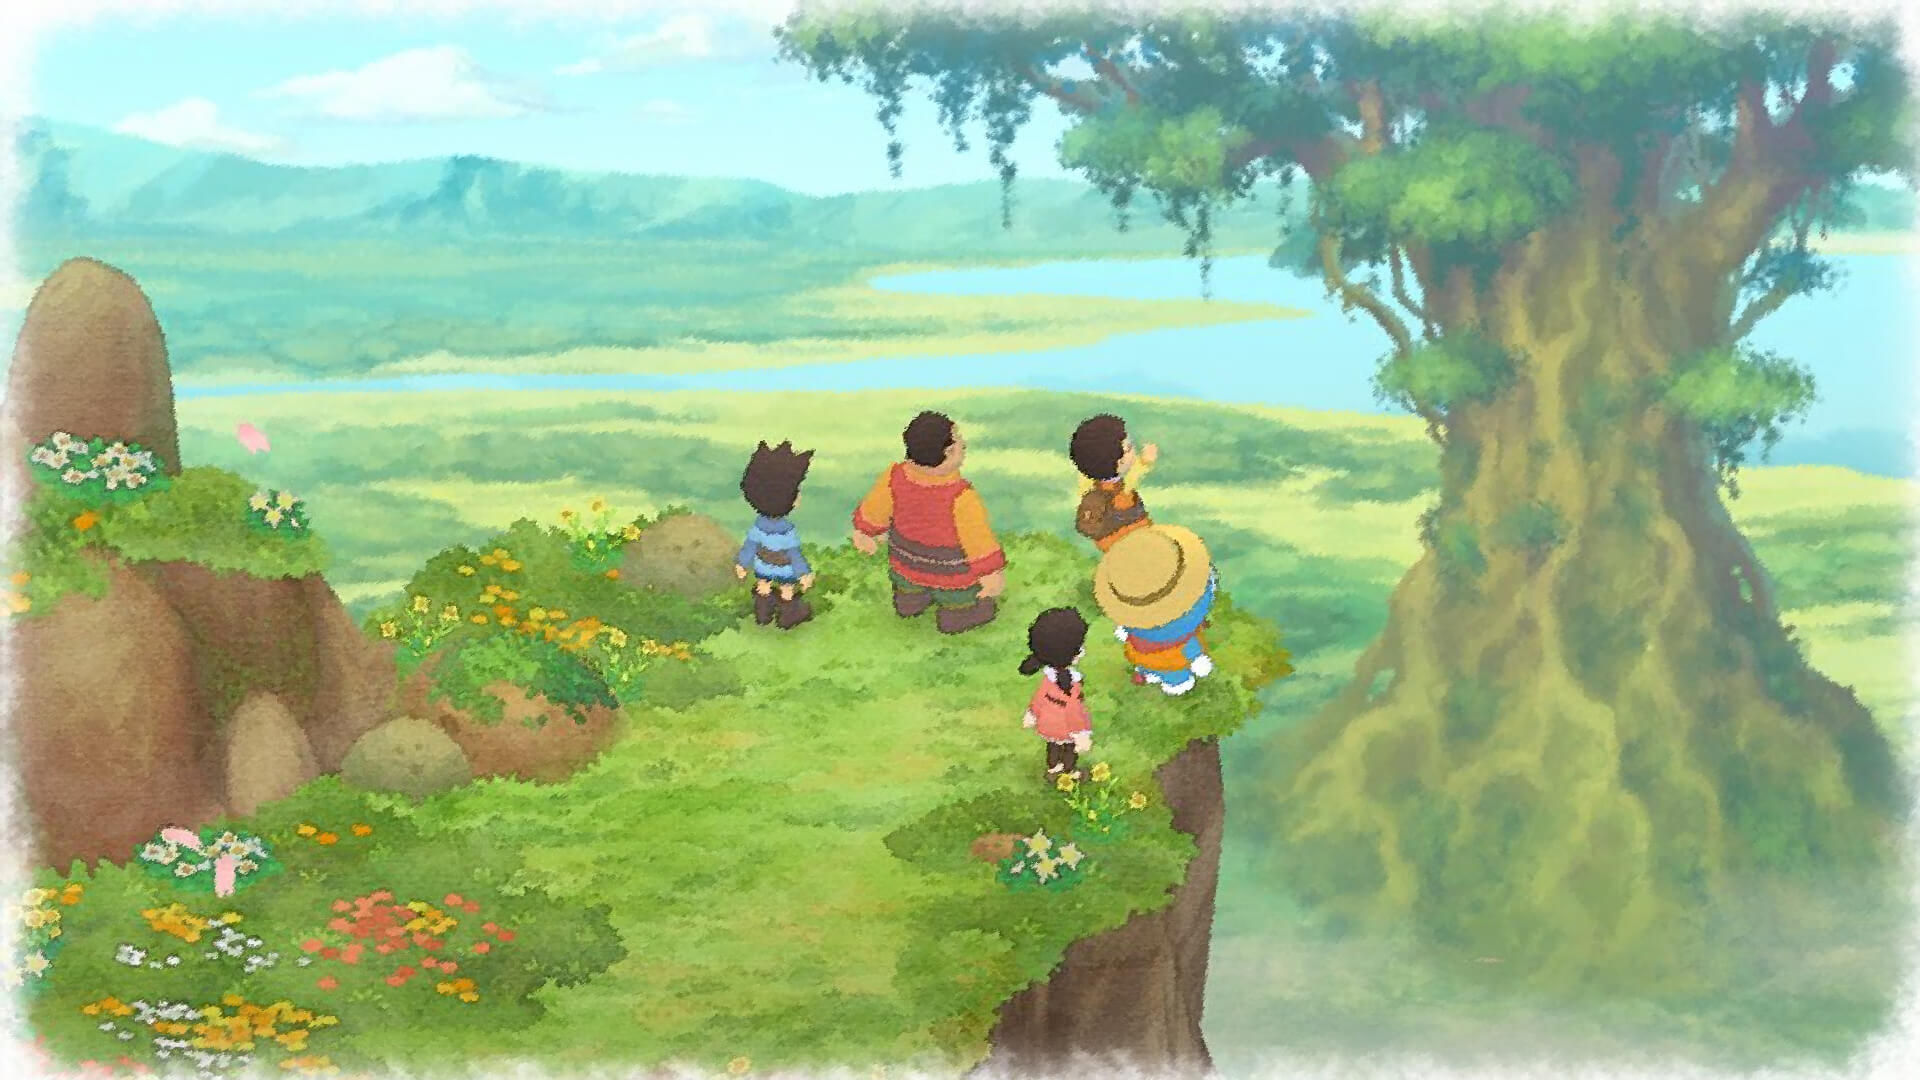 Doraemon Story of Seasons Coming to Switch and PC